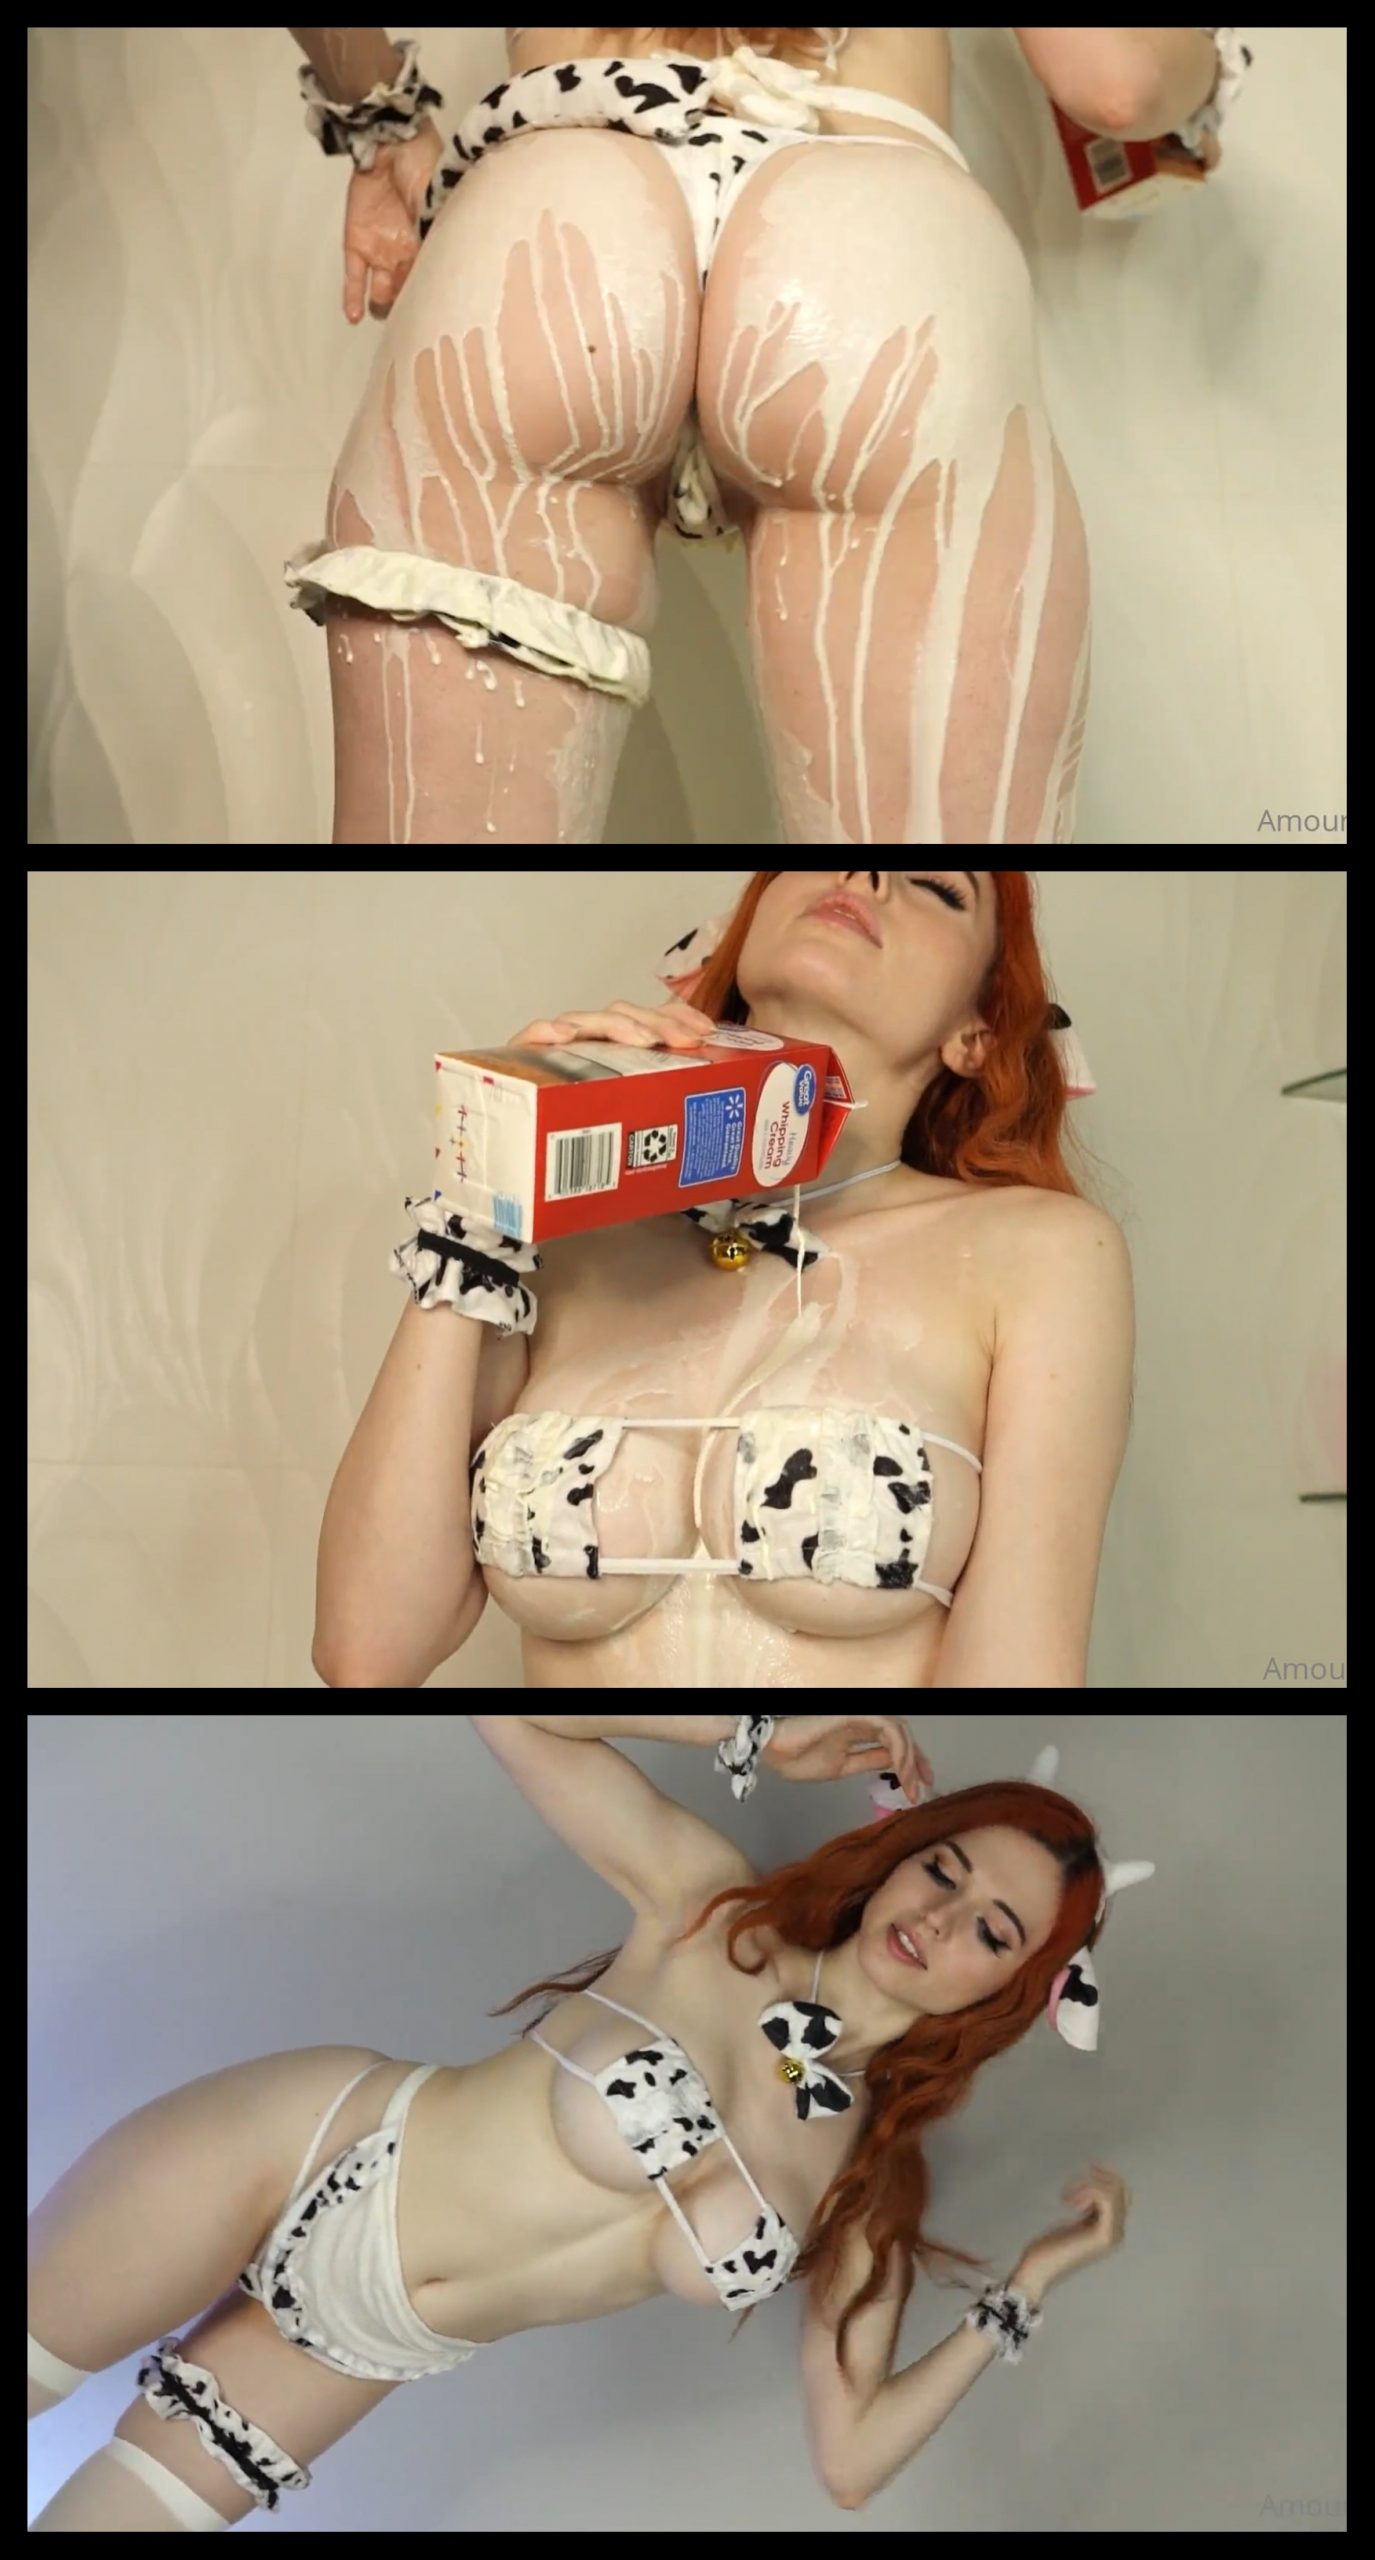 Amouranth Milk Play Video Leaked Onlyfans (10 min)